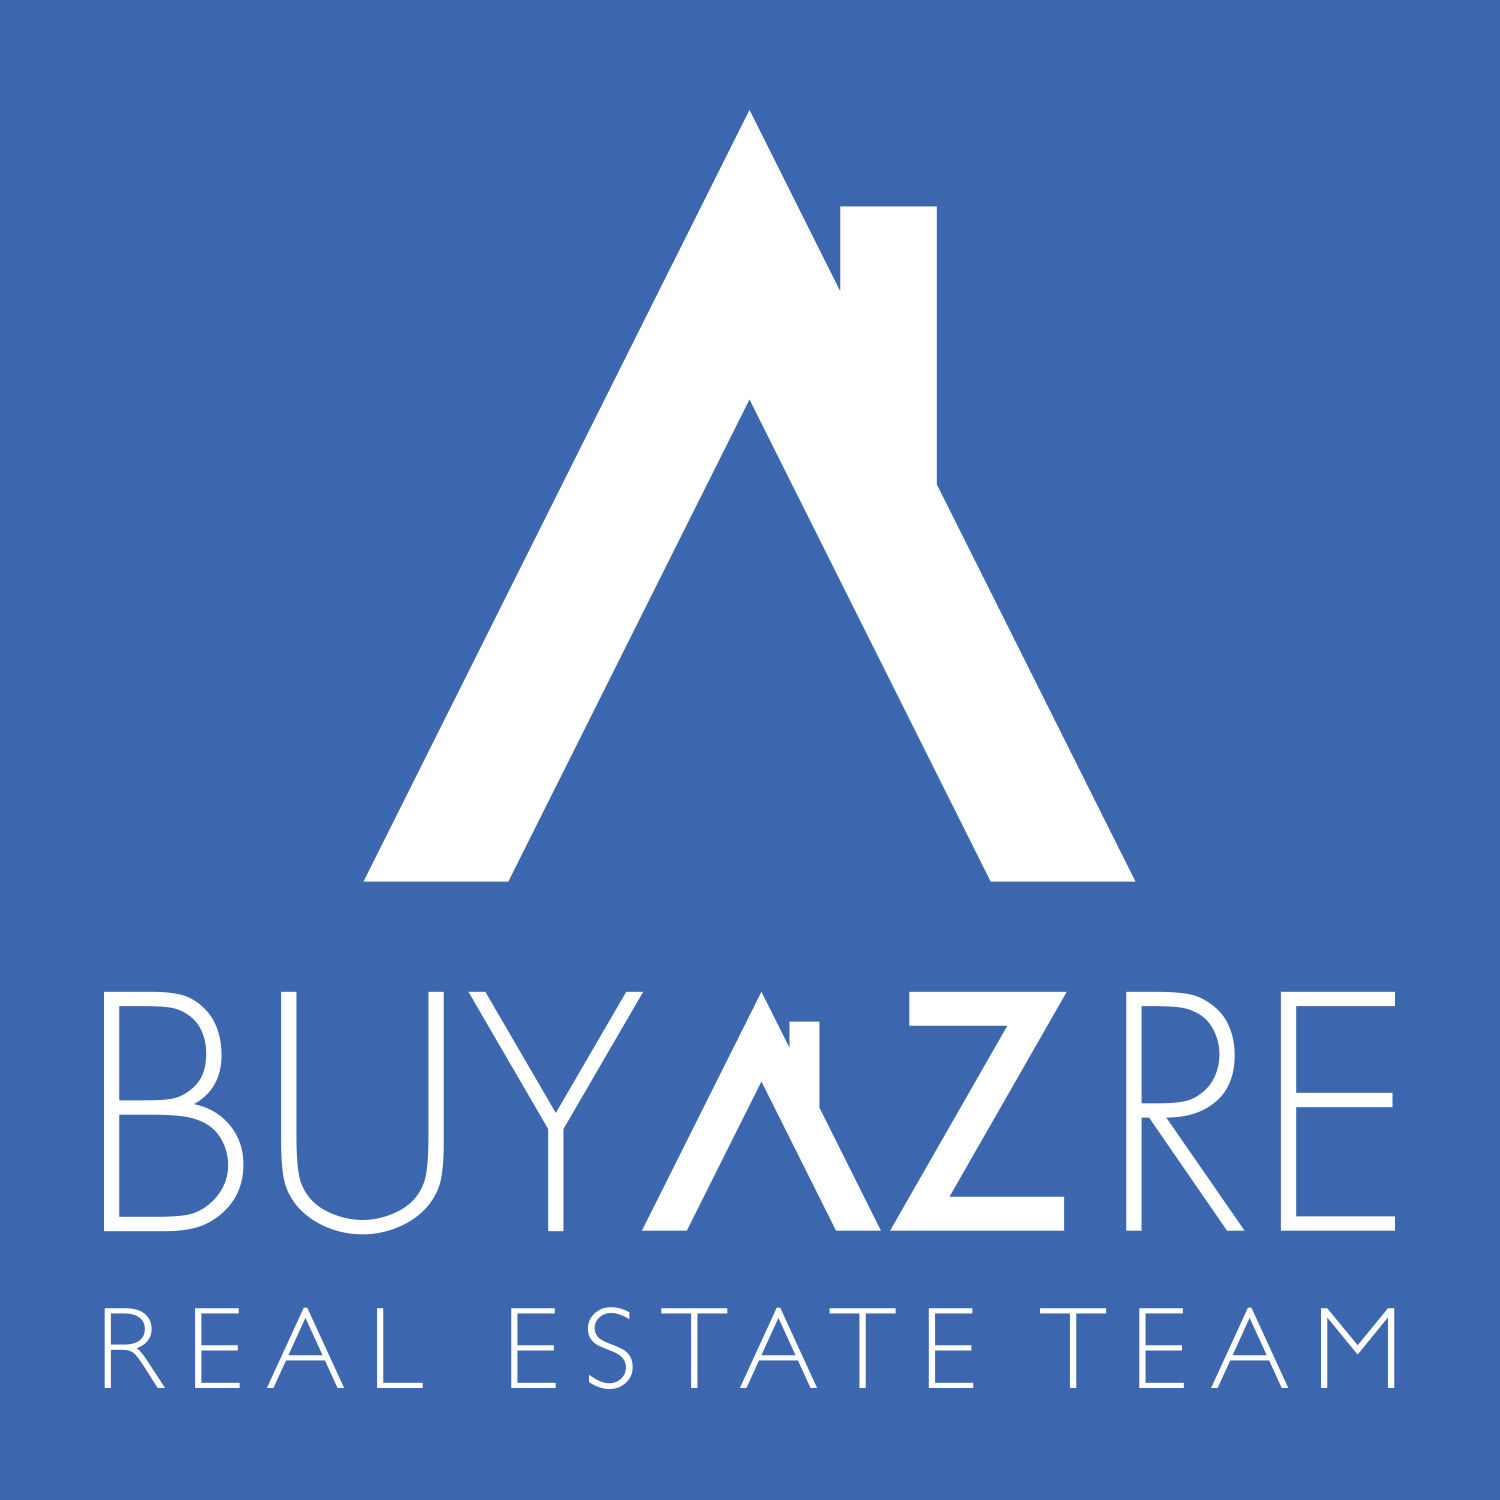 CHRISTOPHER TALLEY -  BUYAZRE REAL ESTATE